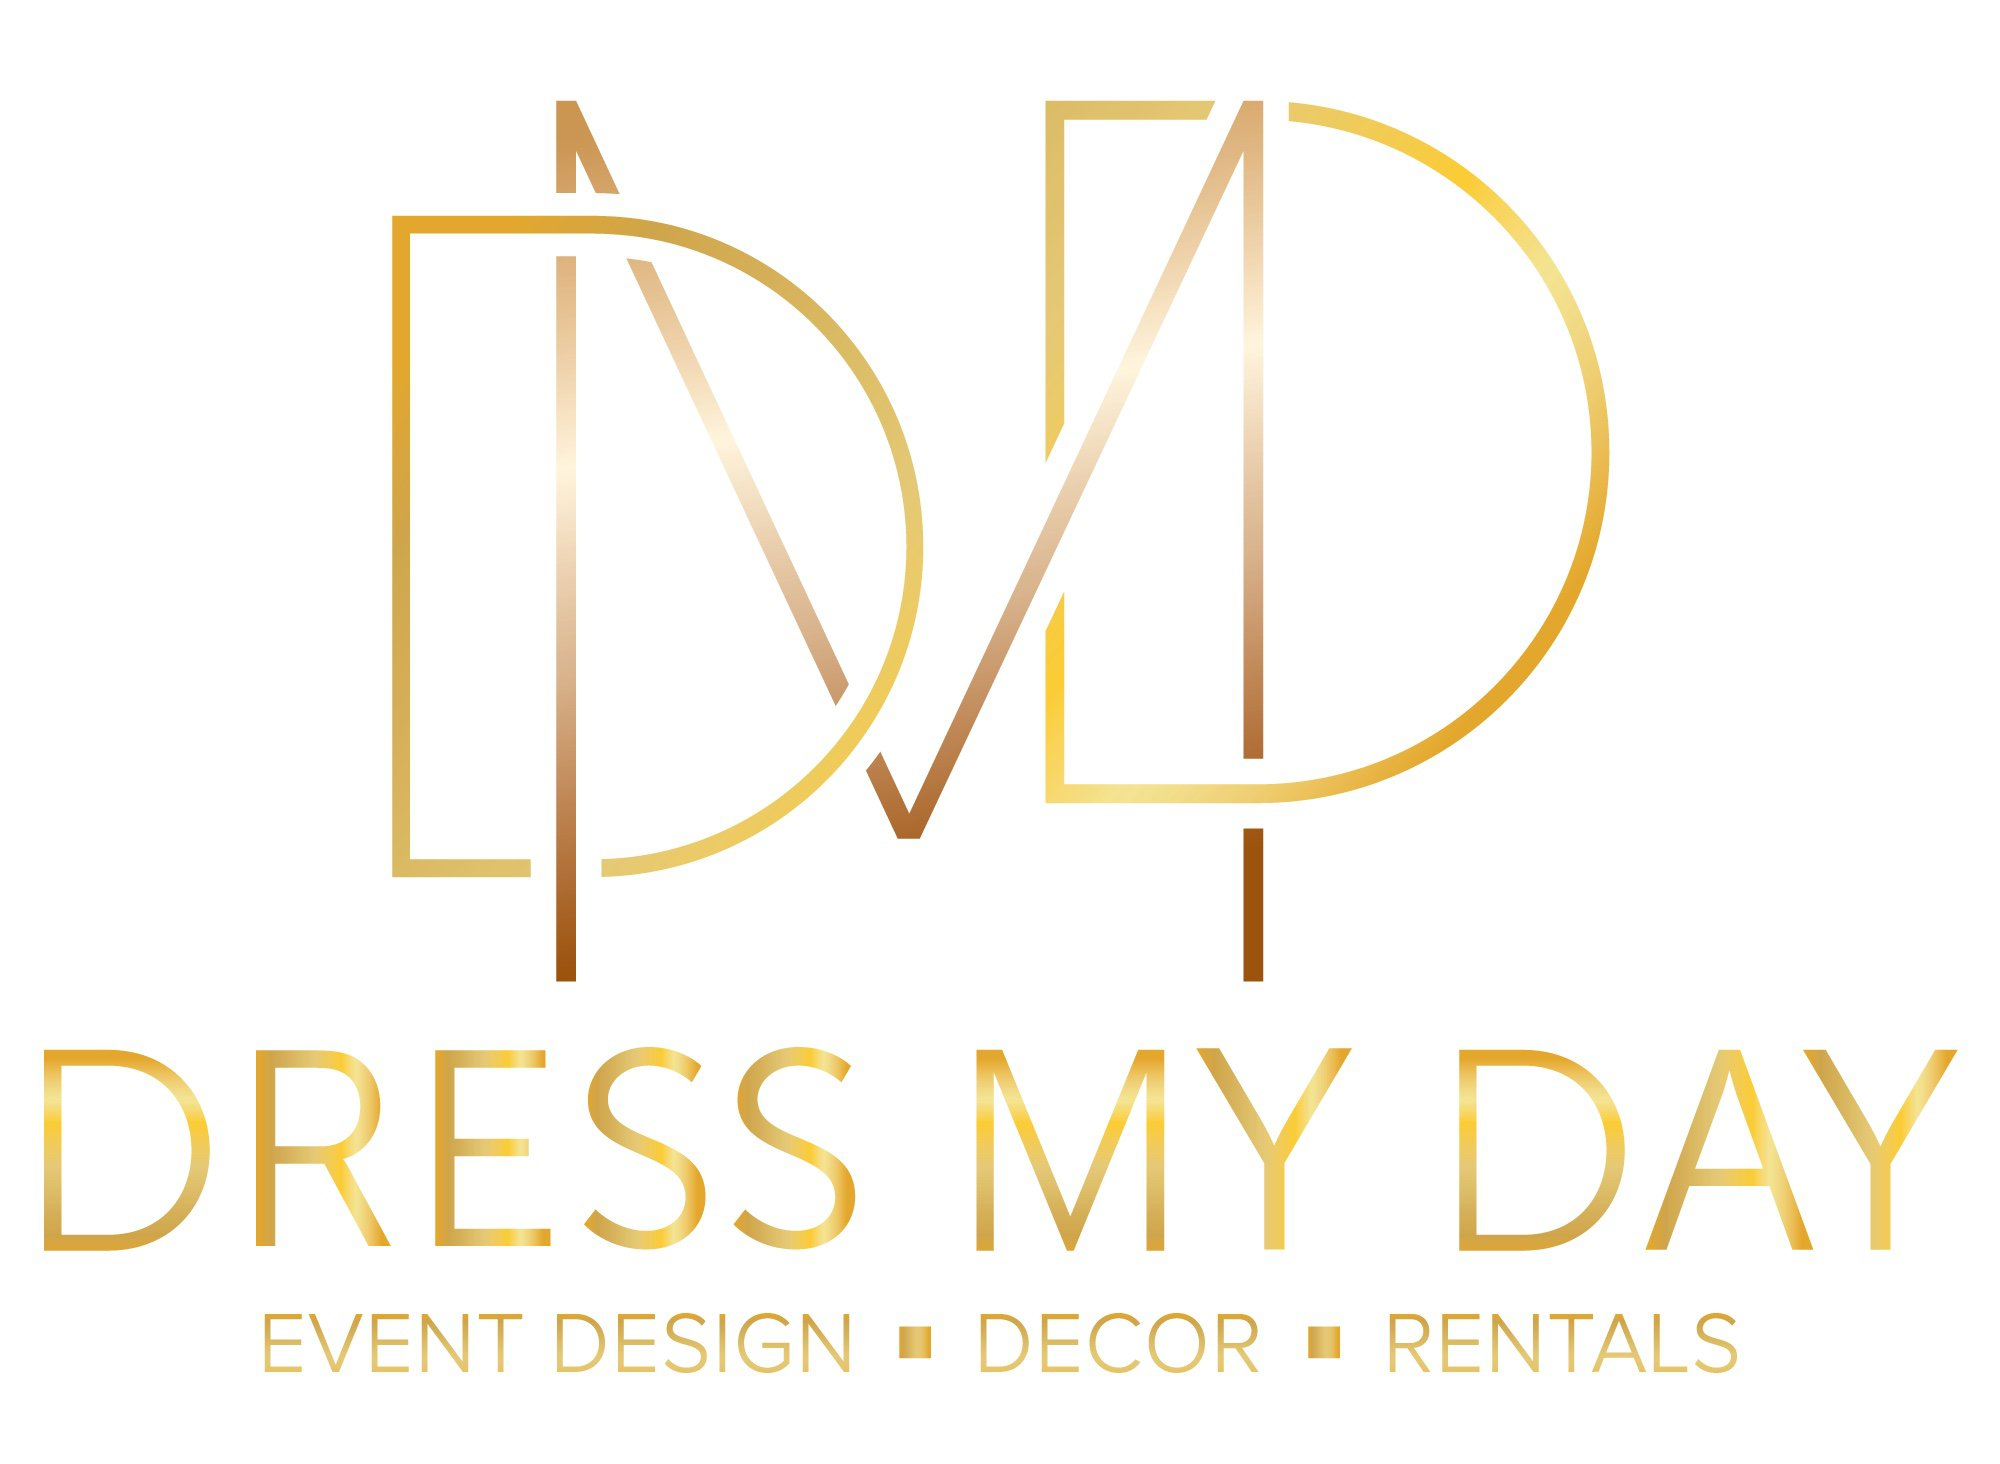 dress my day